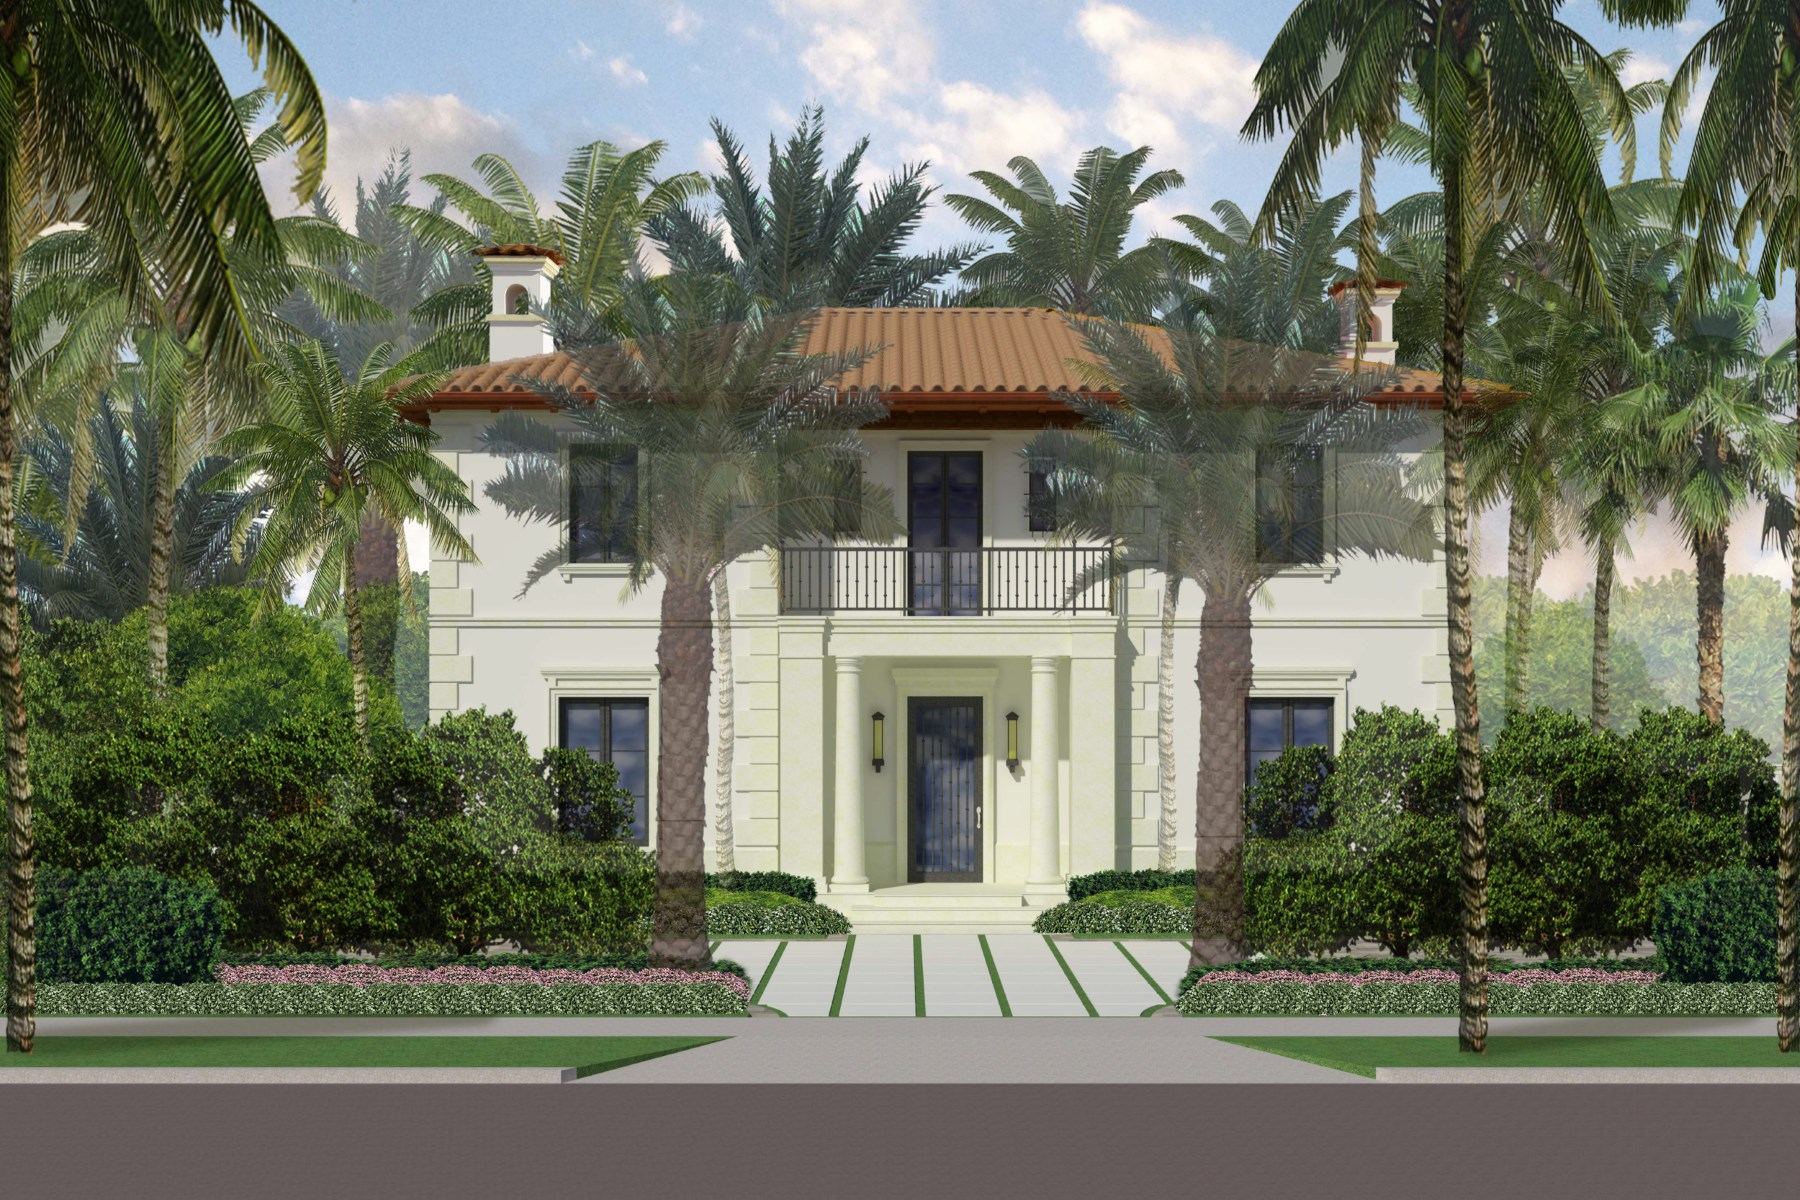 Maison unifamiliale pour l Vente à Mid-Town Palm Beach New Construction 280 N County Rd North End, Palm Beach, Florida, 33480 États-Unis